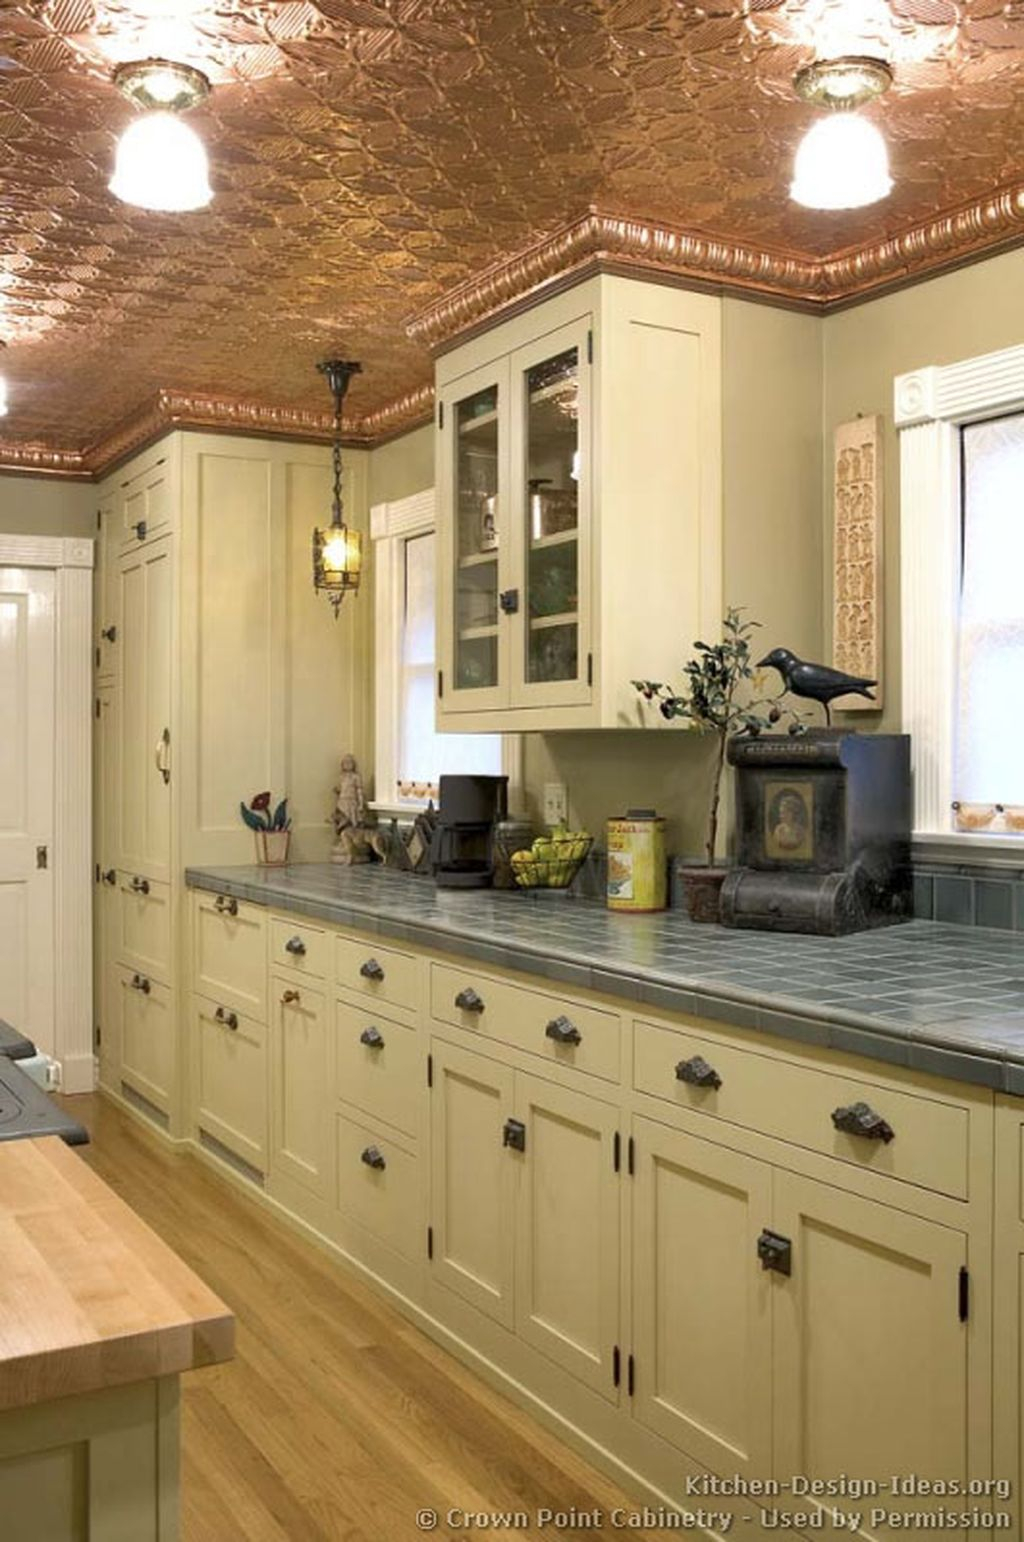 Inspiring Traditional Victorian Kitchen Remodel Ideas 19